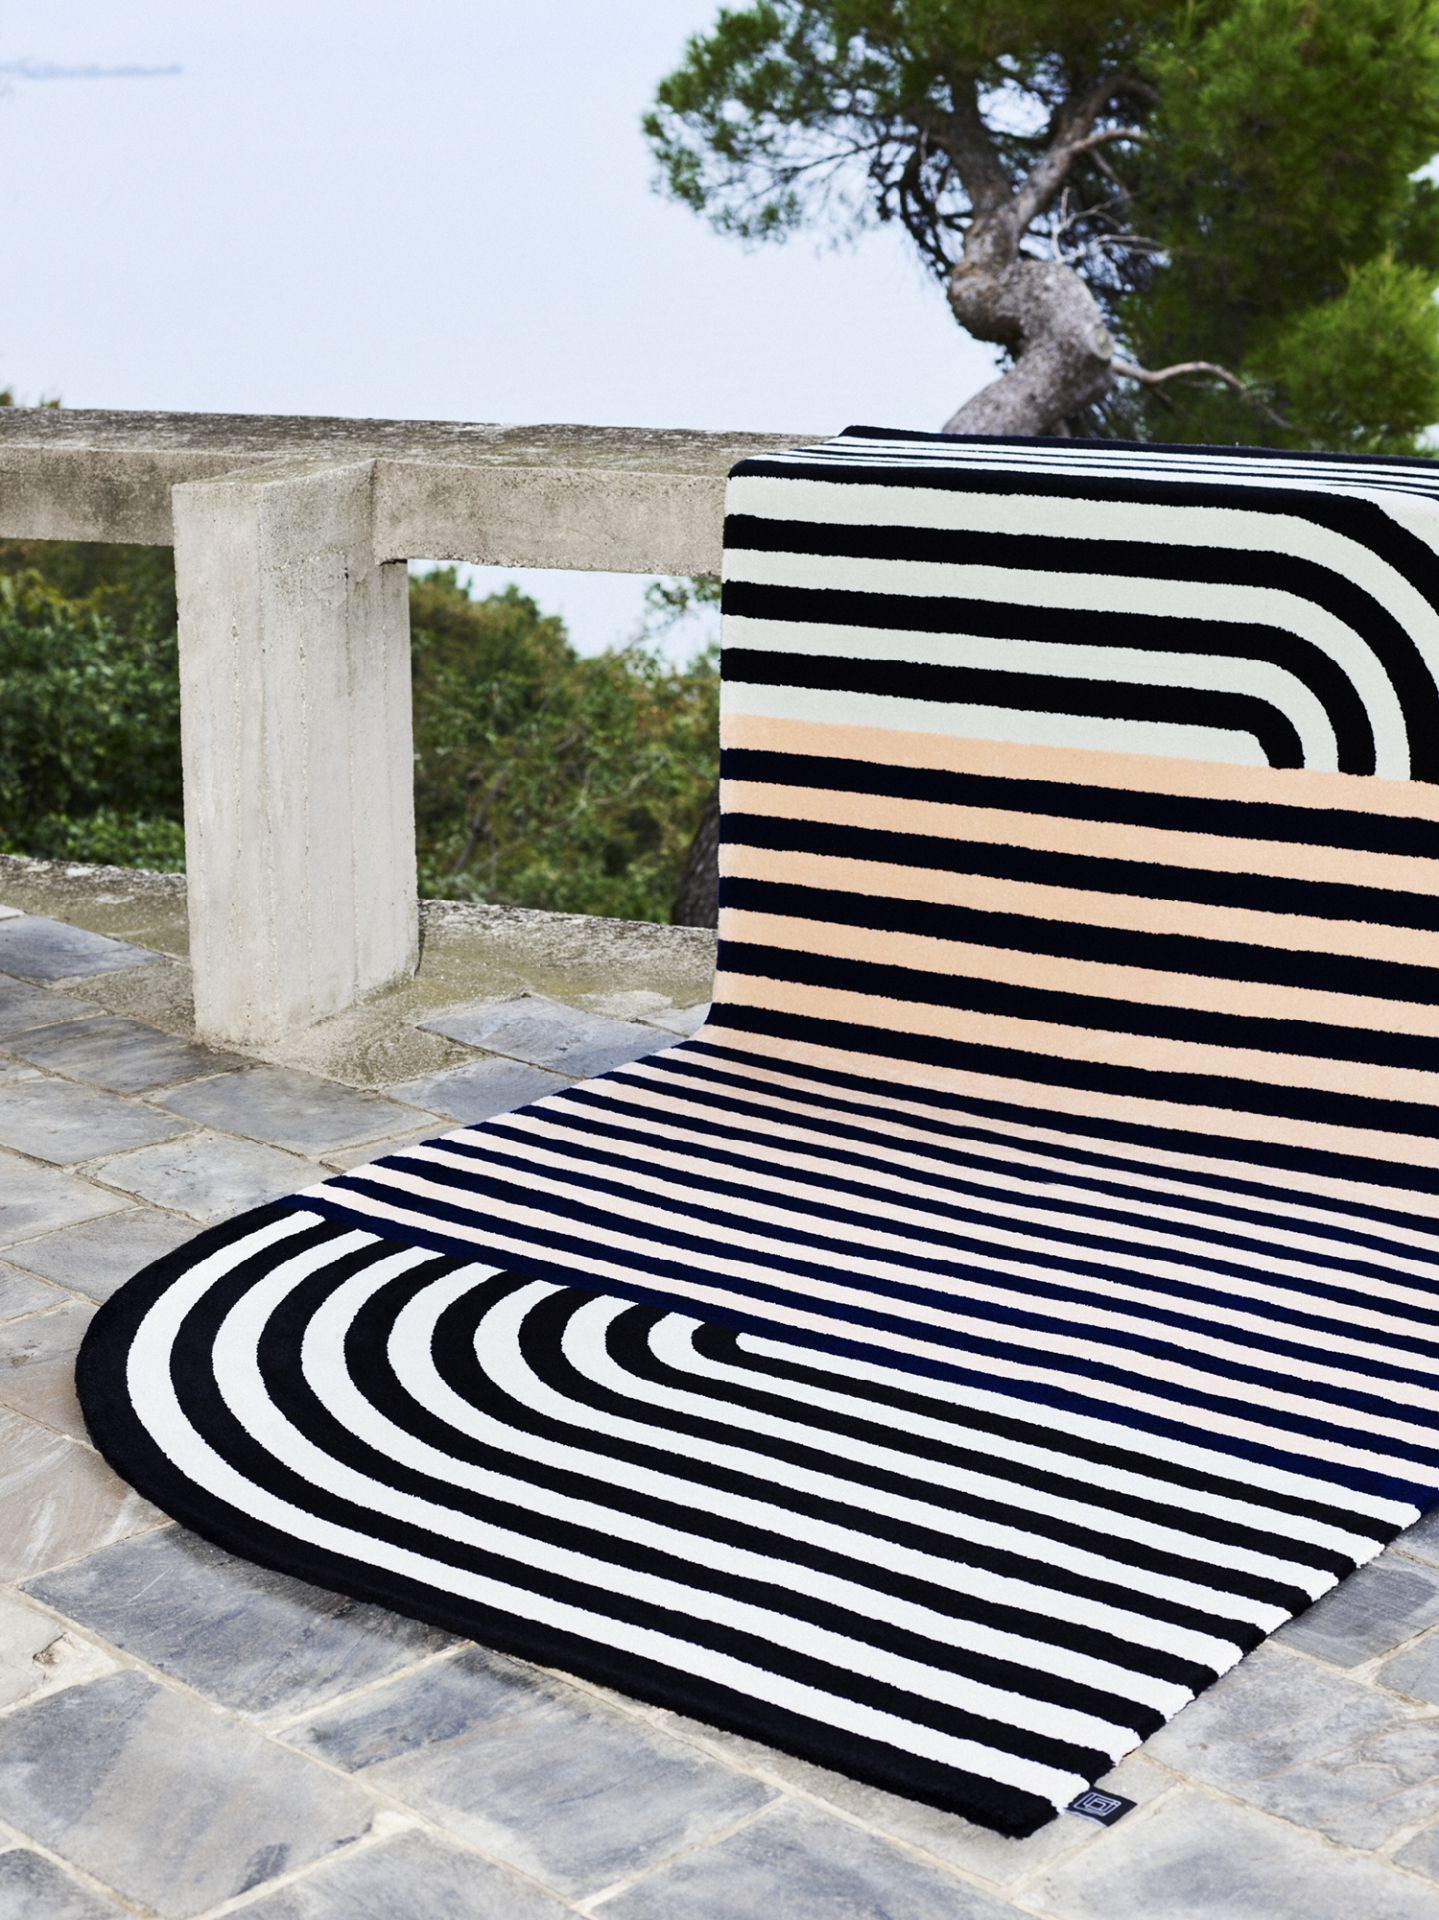 Carpet-Edition_Roquebrune_photo-Omar-Sartor_designalive-4